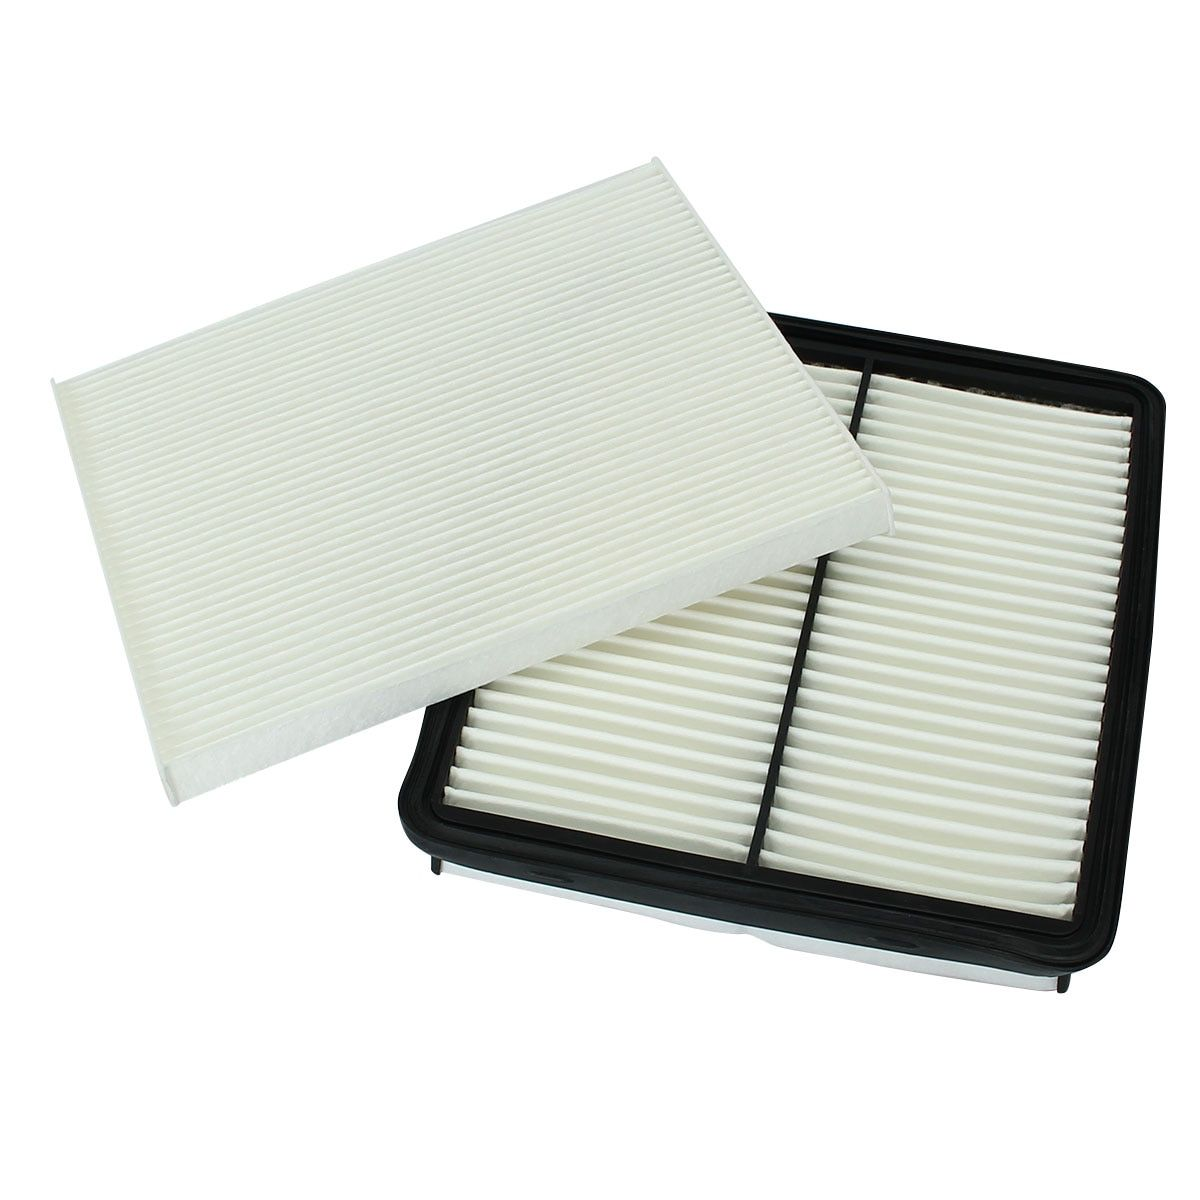 2 Pcs/Set AF6124 C36179 CA10881 CF11178 Car Engine Cabin Air Filter For HYUNDAI /KIA SB-CF36179/28113-2P100